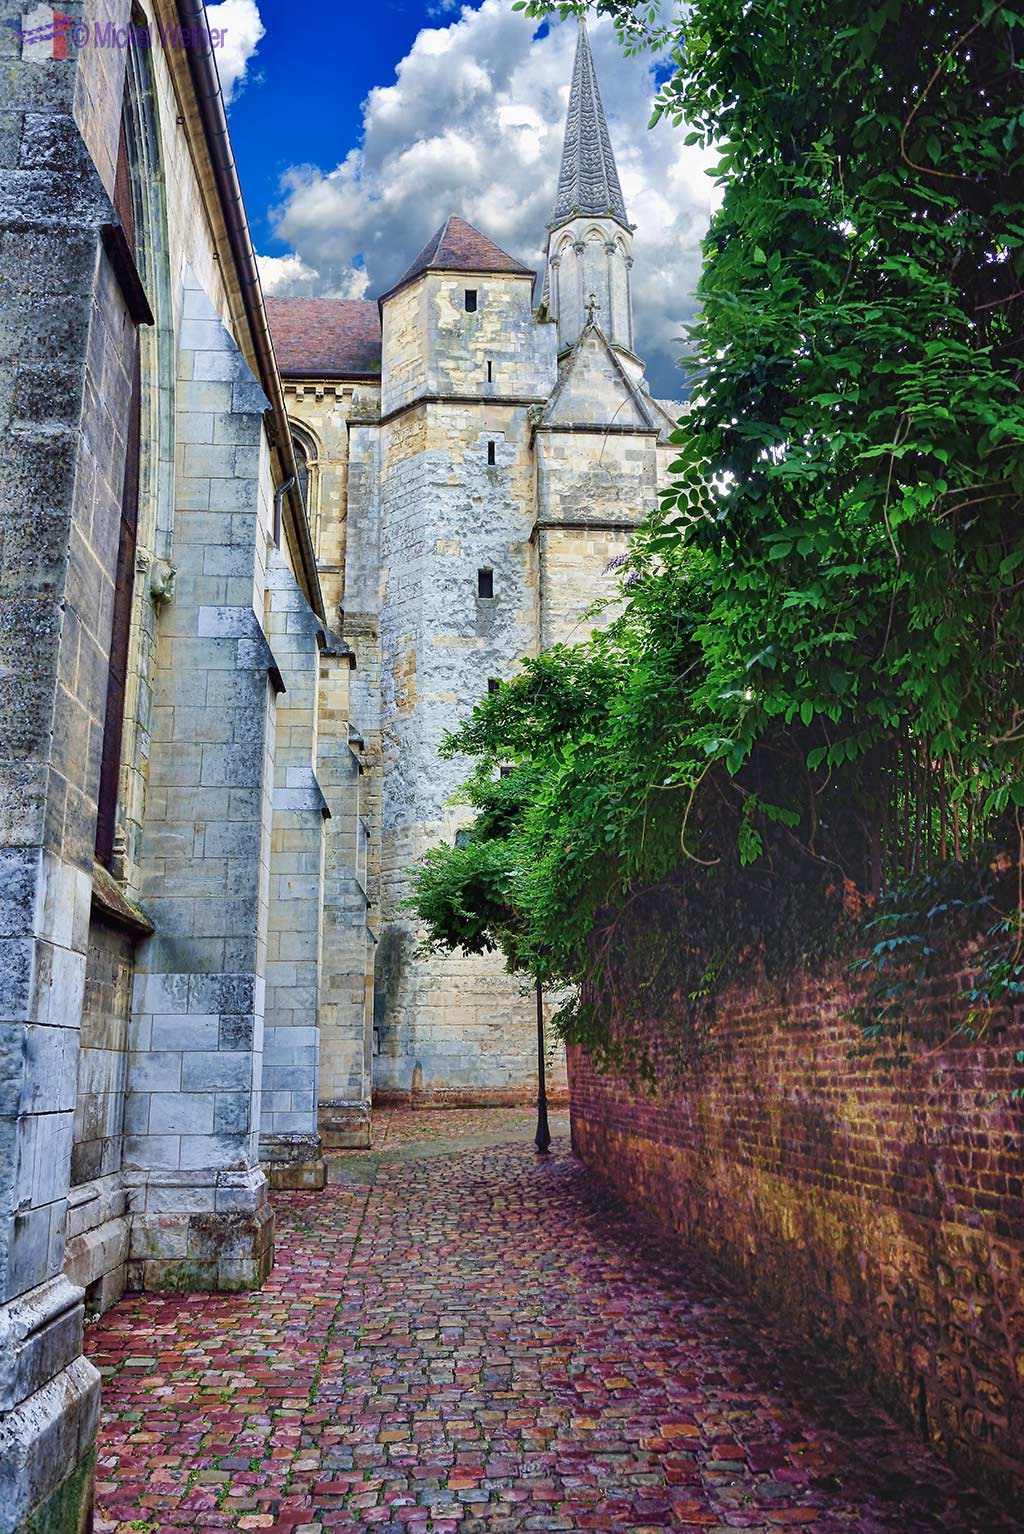 Narrow side of the Saint-Pierre cathedral of Lisieux, Normandy